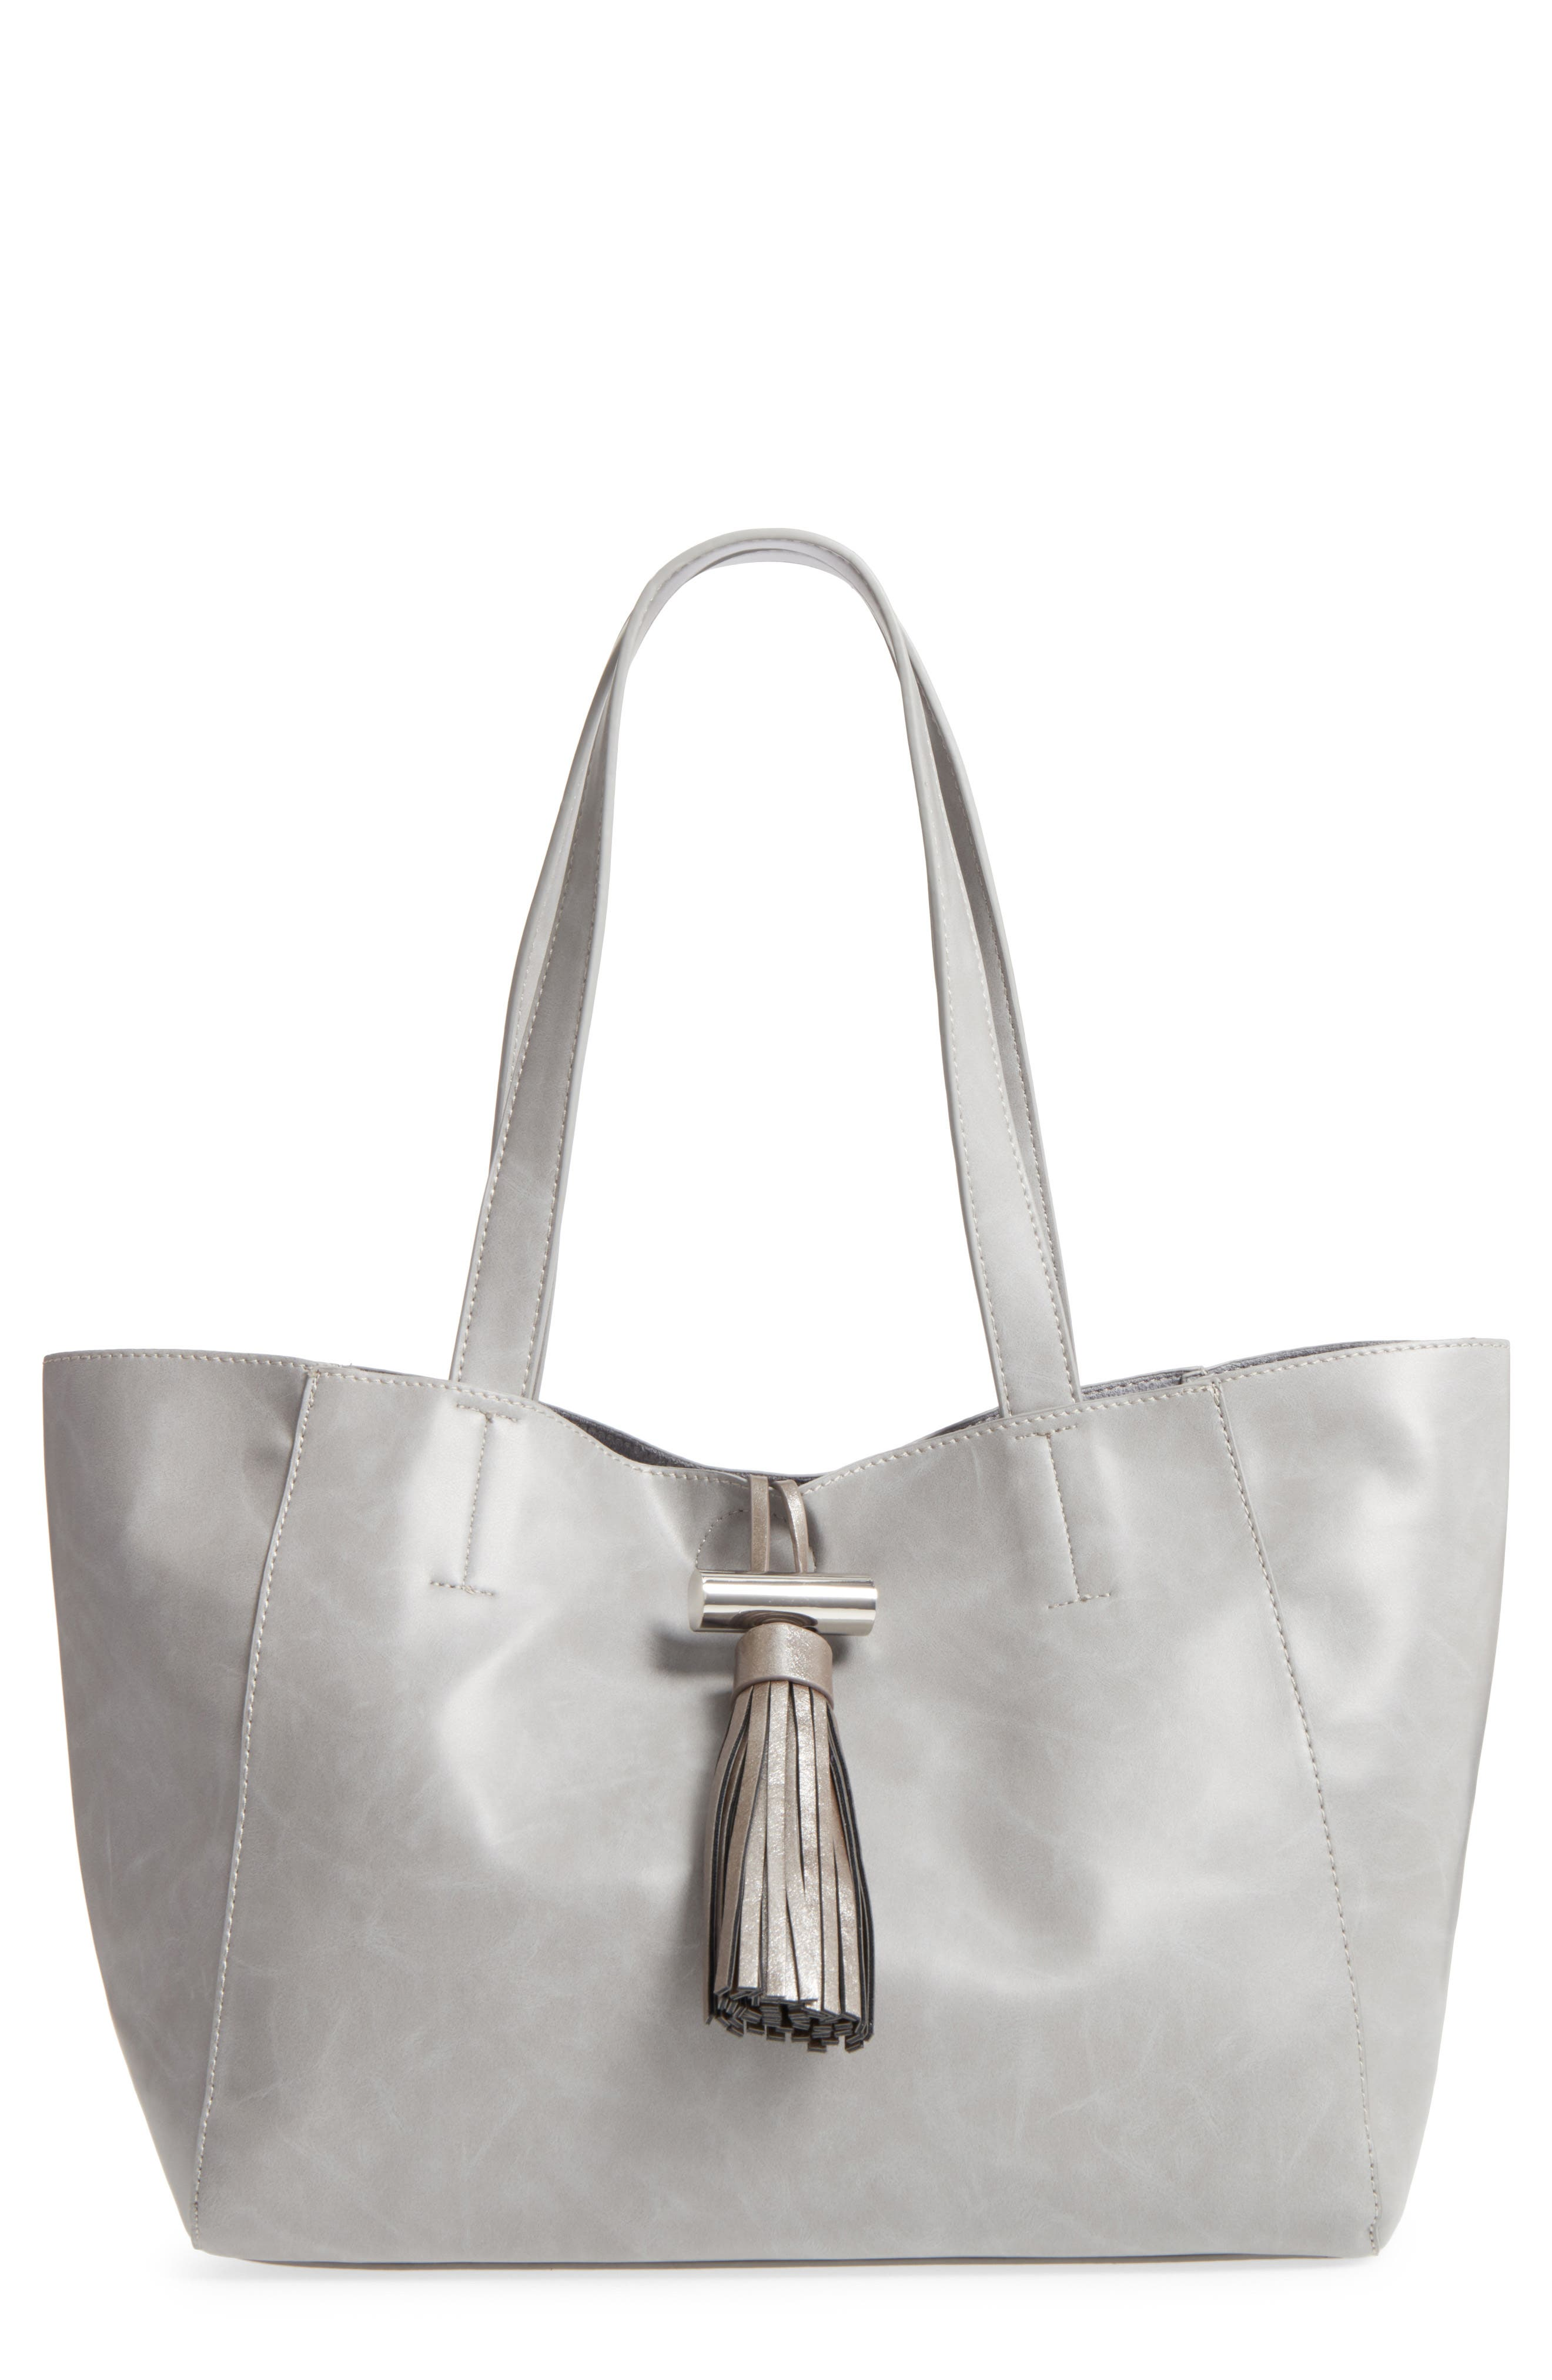 Emperia August Faux Leather Tassel Tote